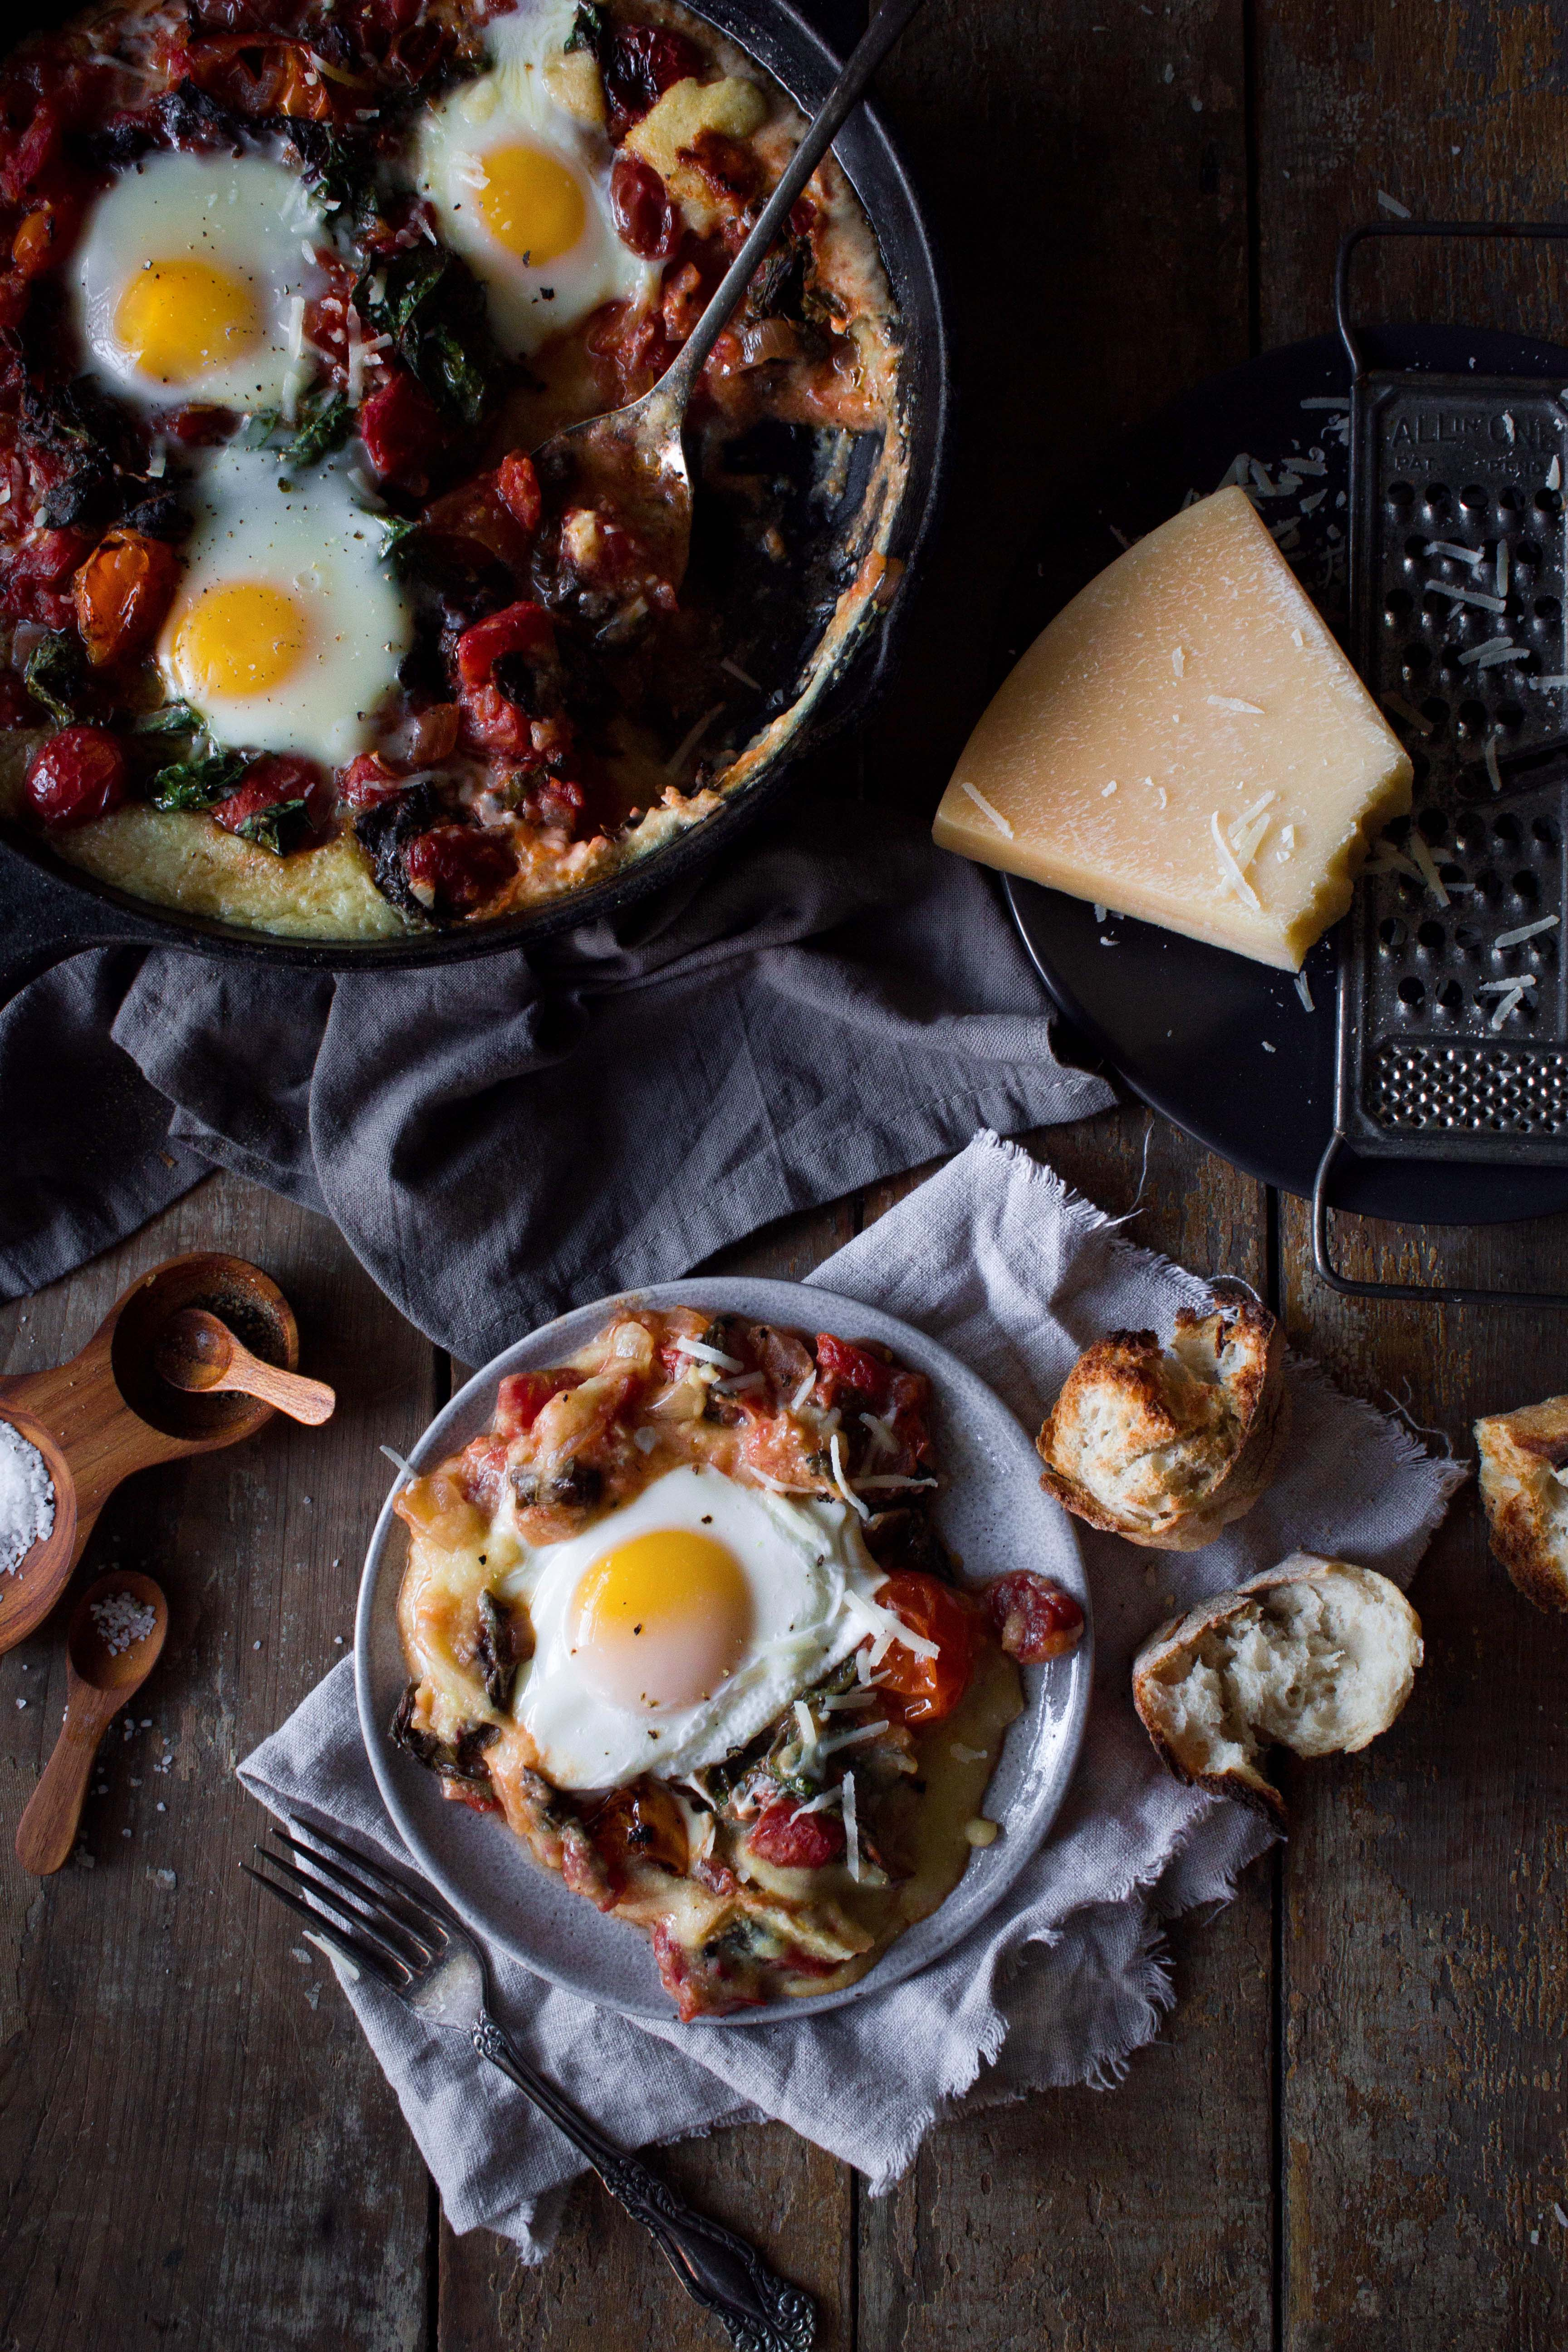 Baked Polenta with Tomato Poached Eggs